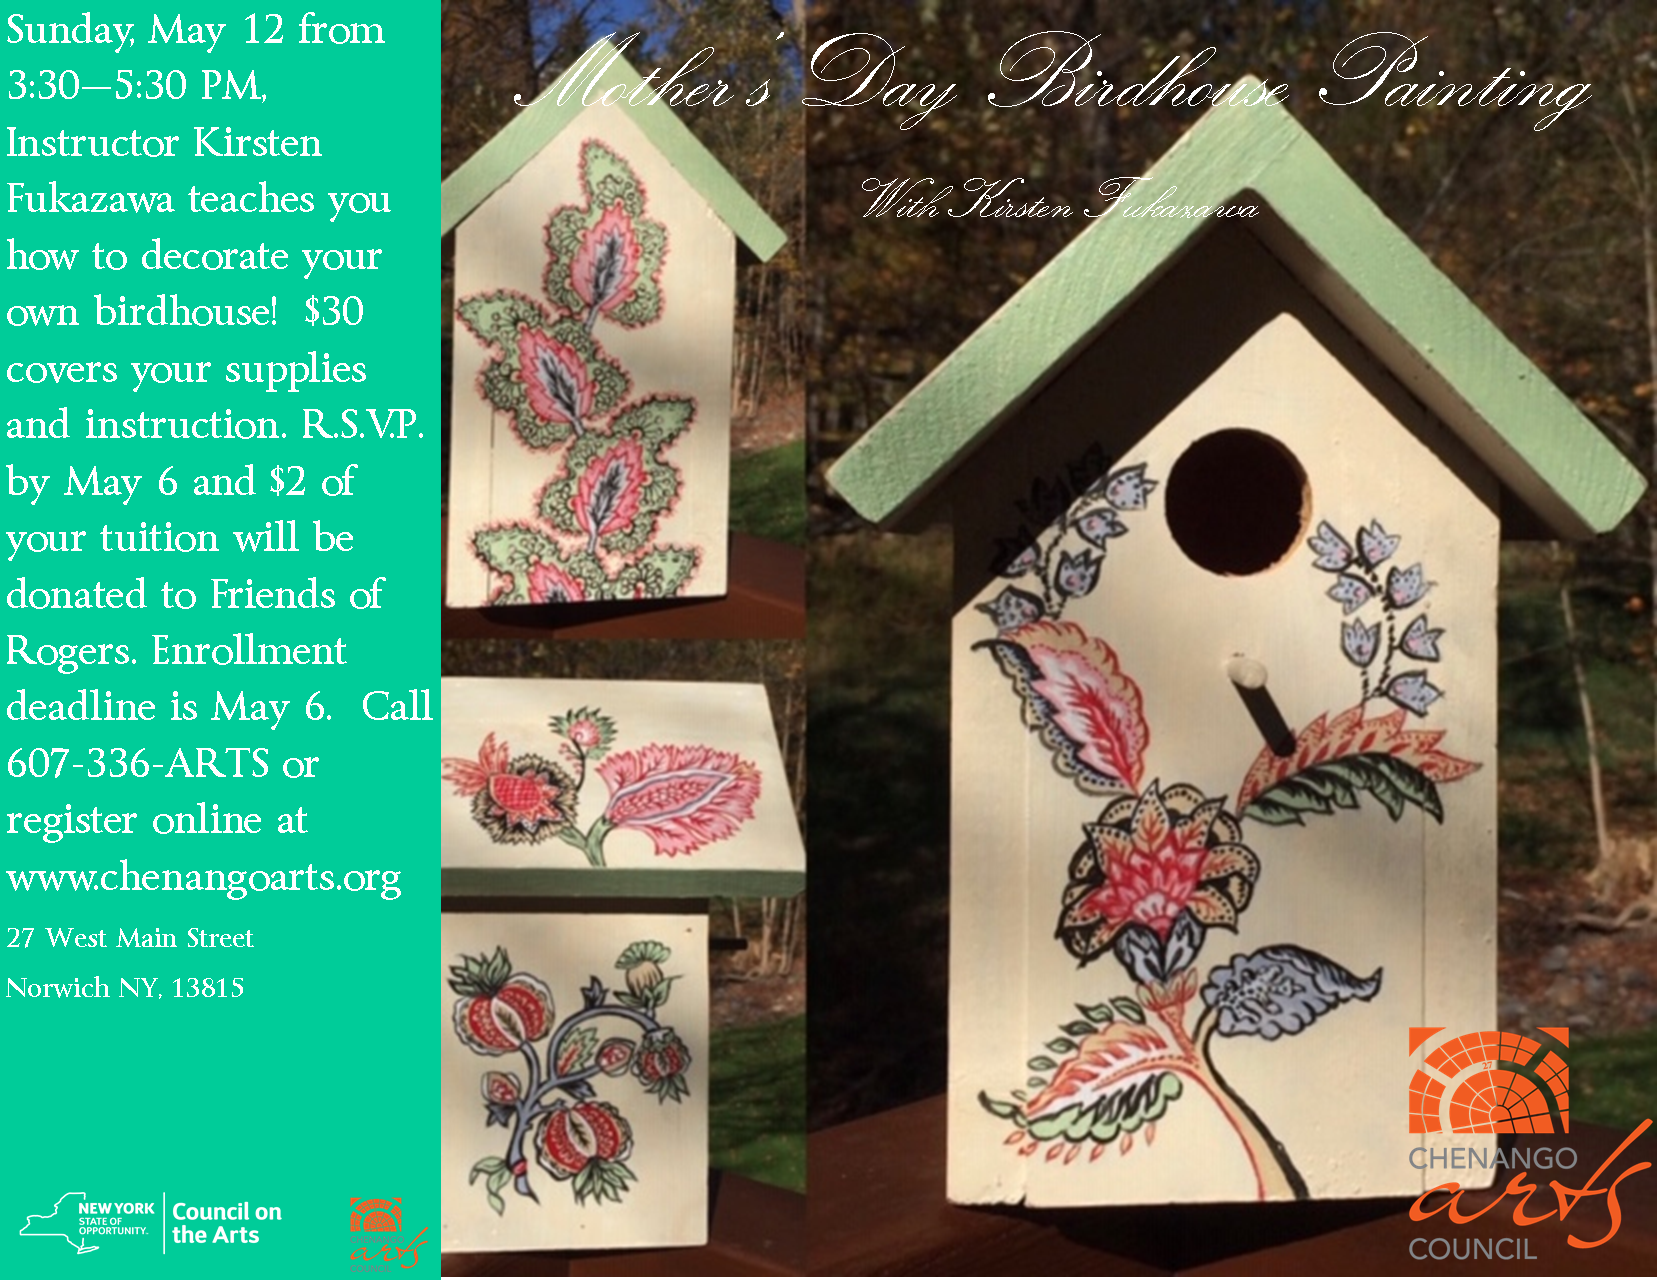 Mother's Day Birdhouse Painting